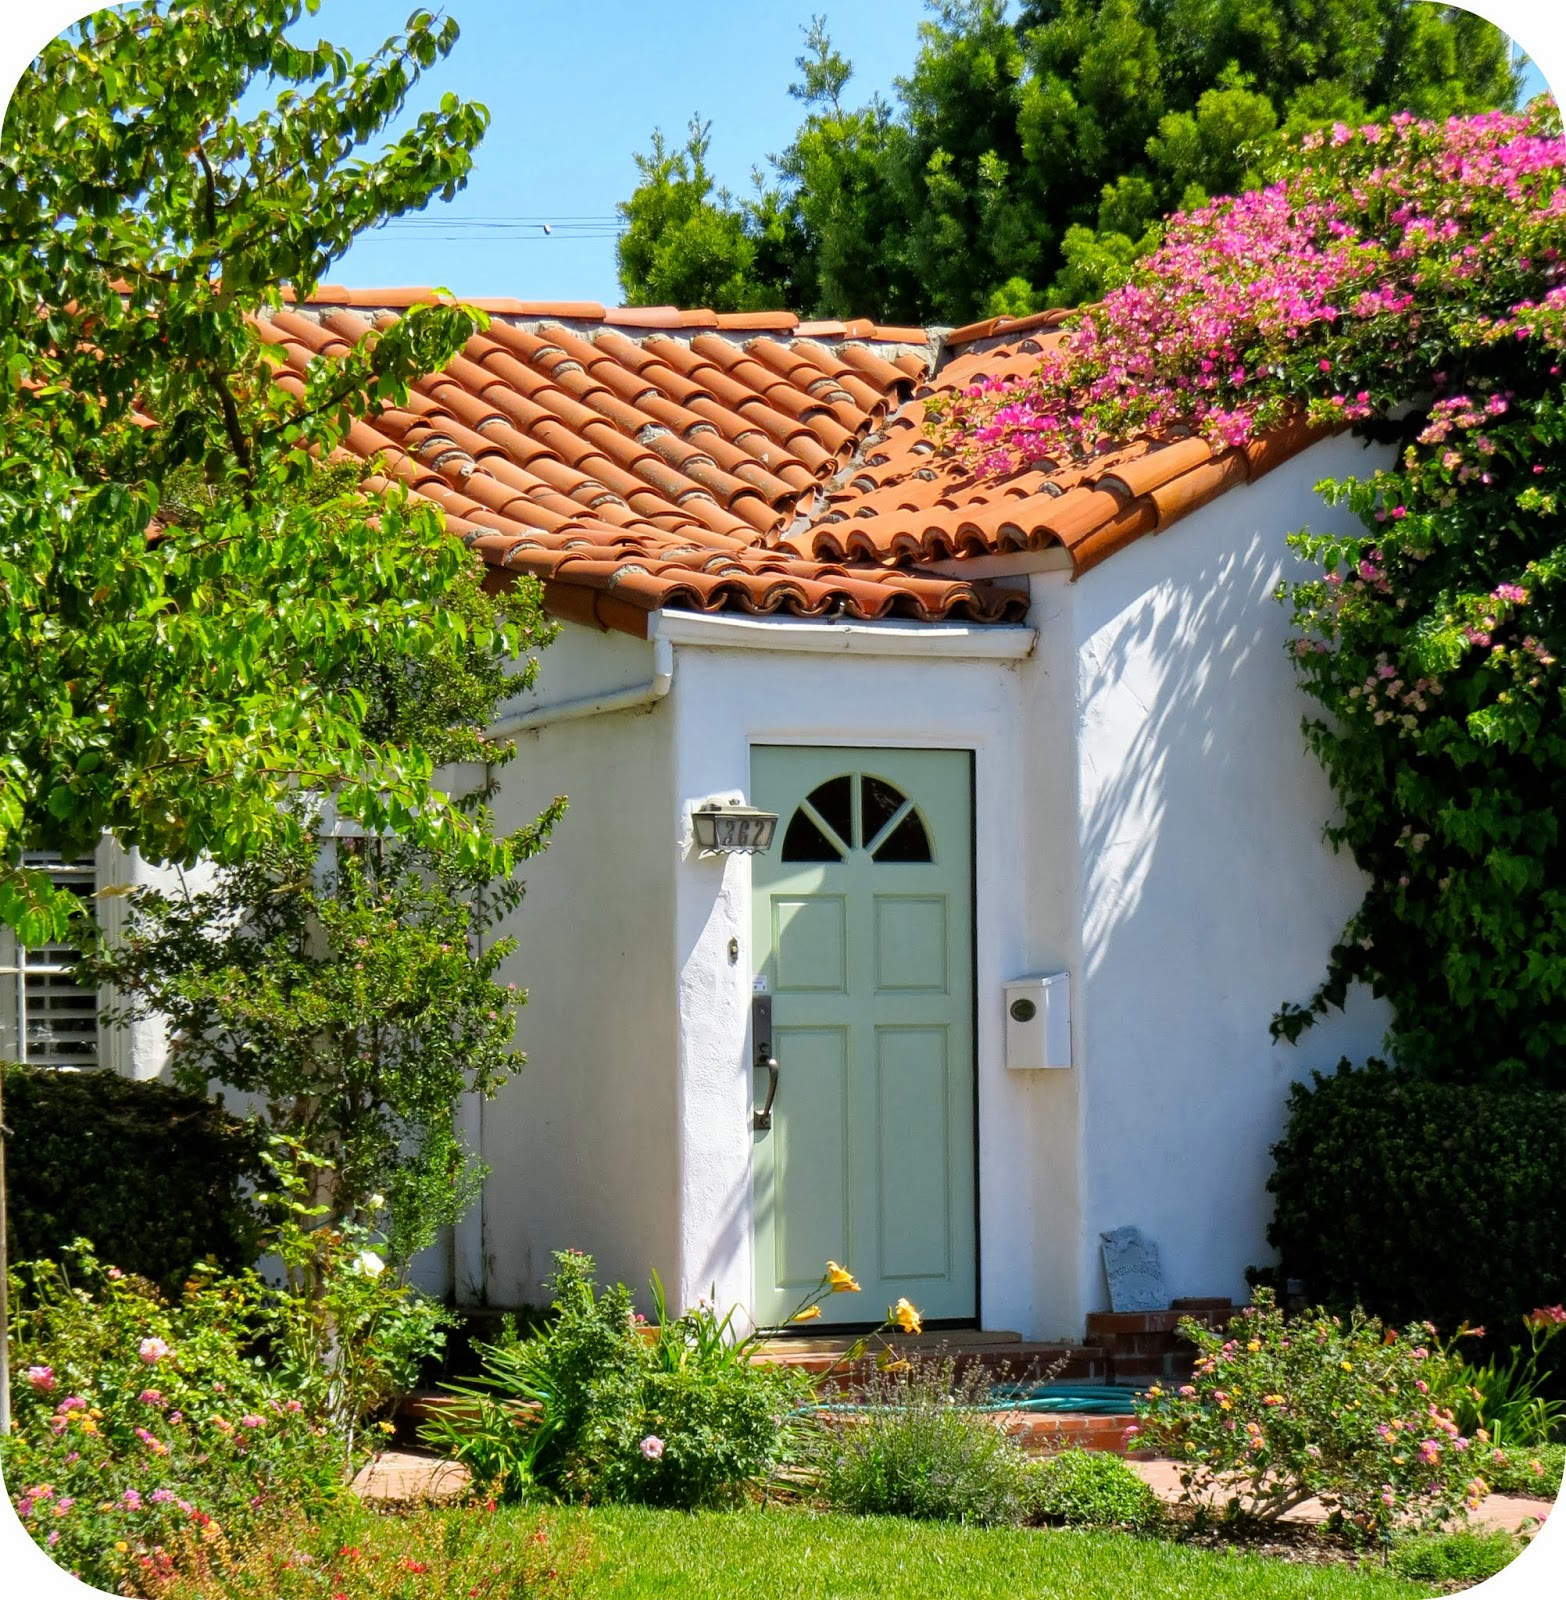 Red Tile Roof White House Green Door How Can You Go Wrong